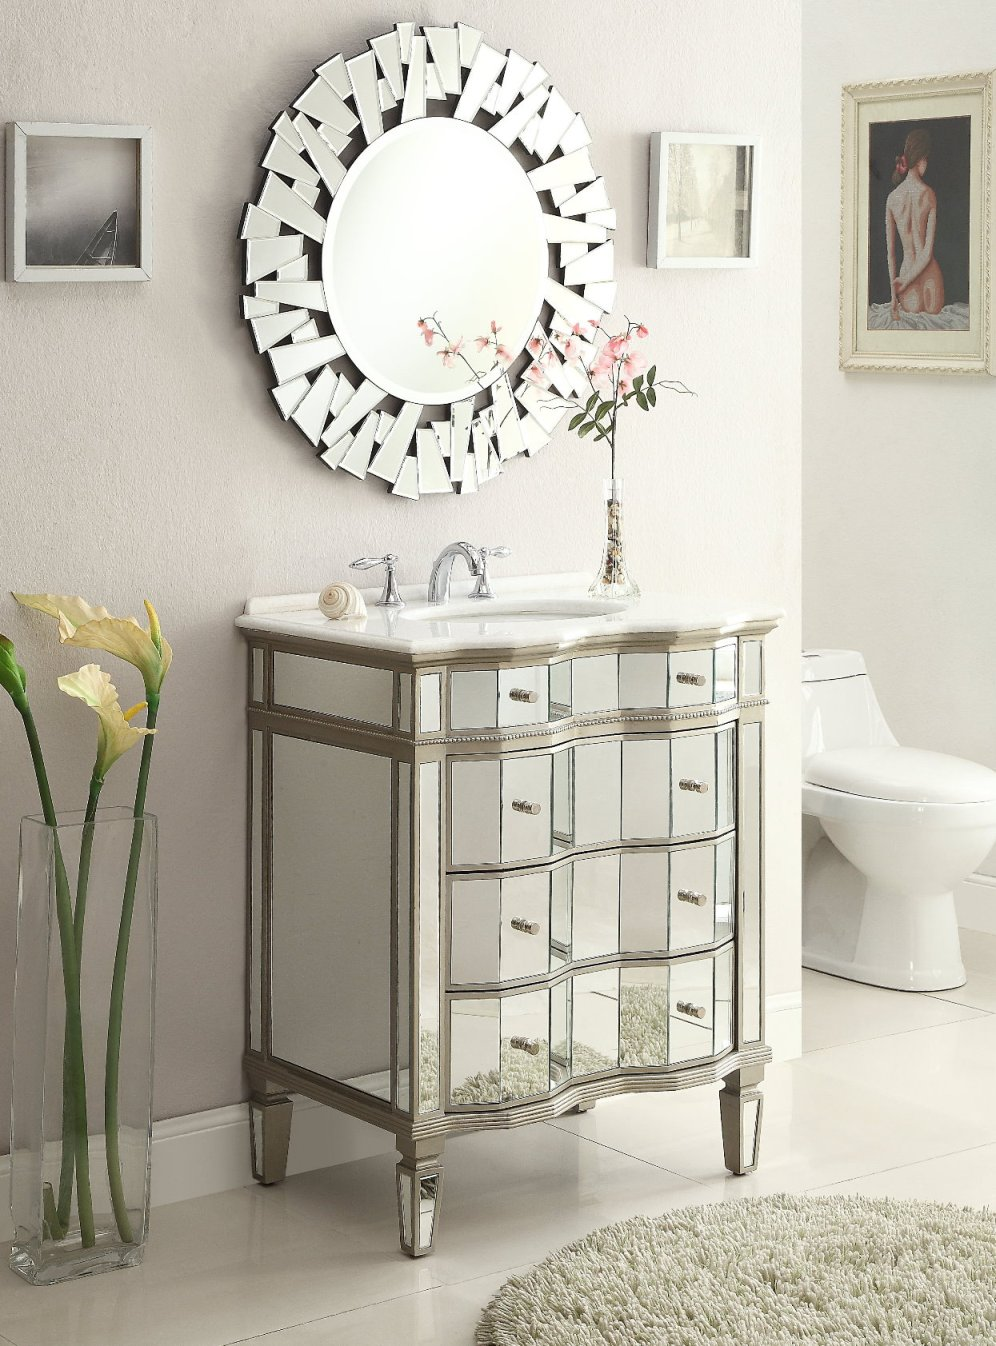 & Adelina 30 inch Mirrored Bathroom Vanity Cabinet u0026 Mirror